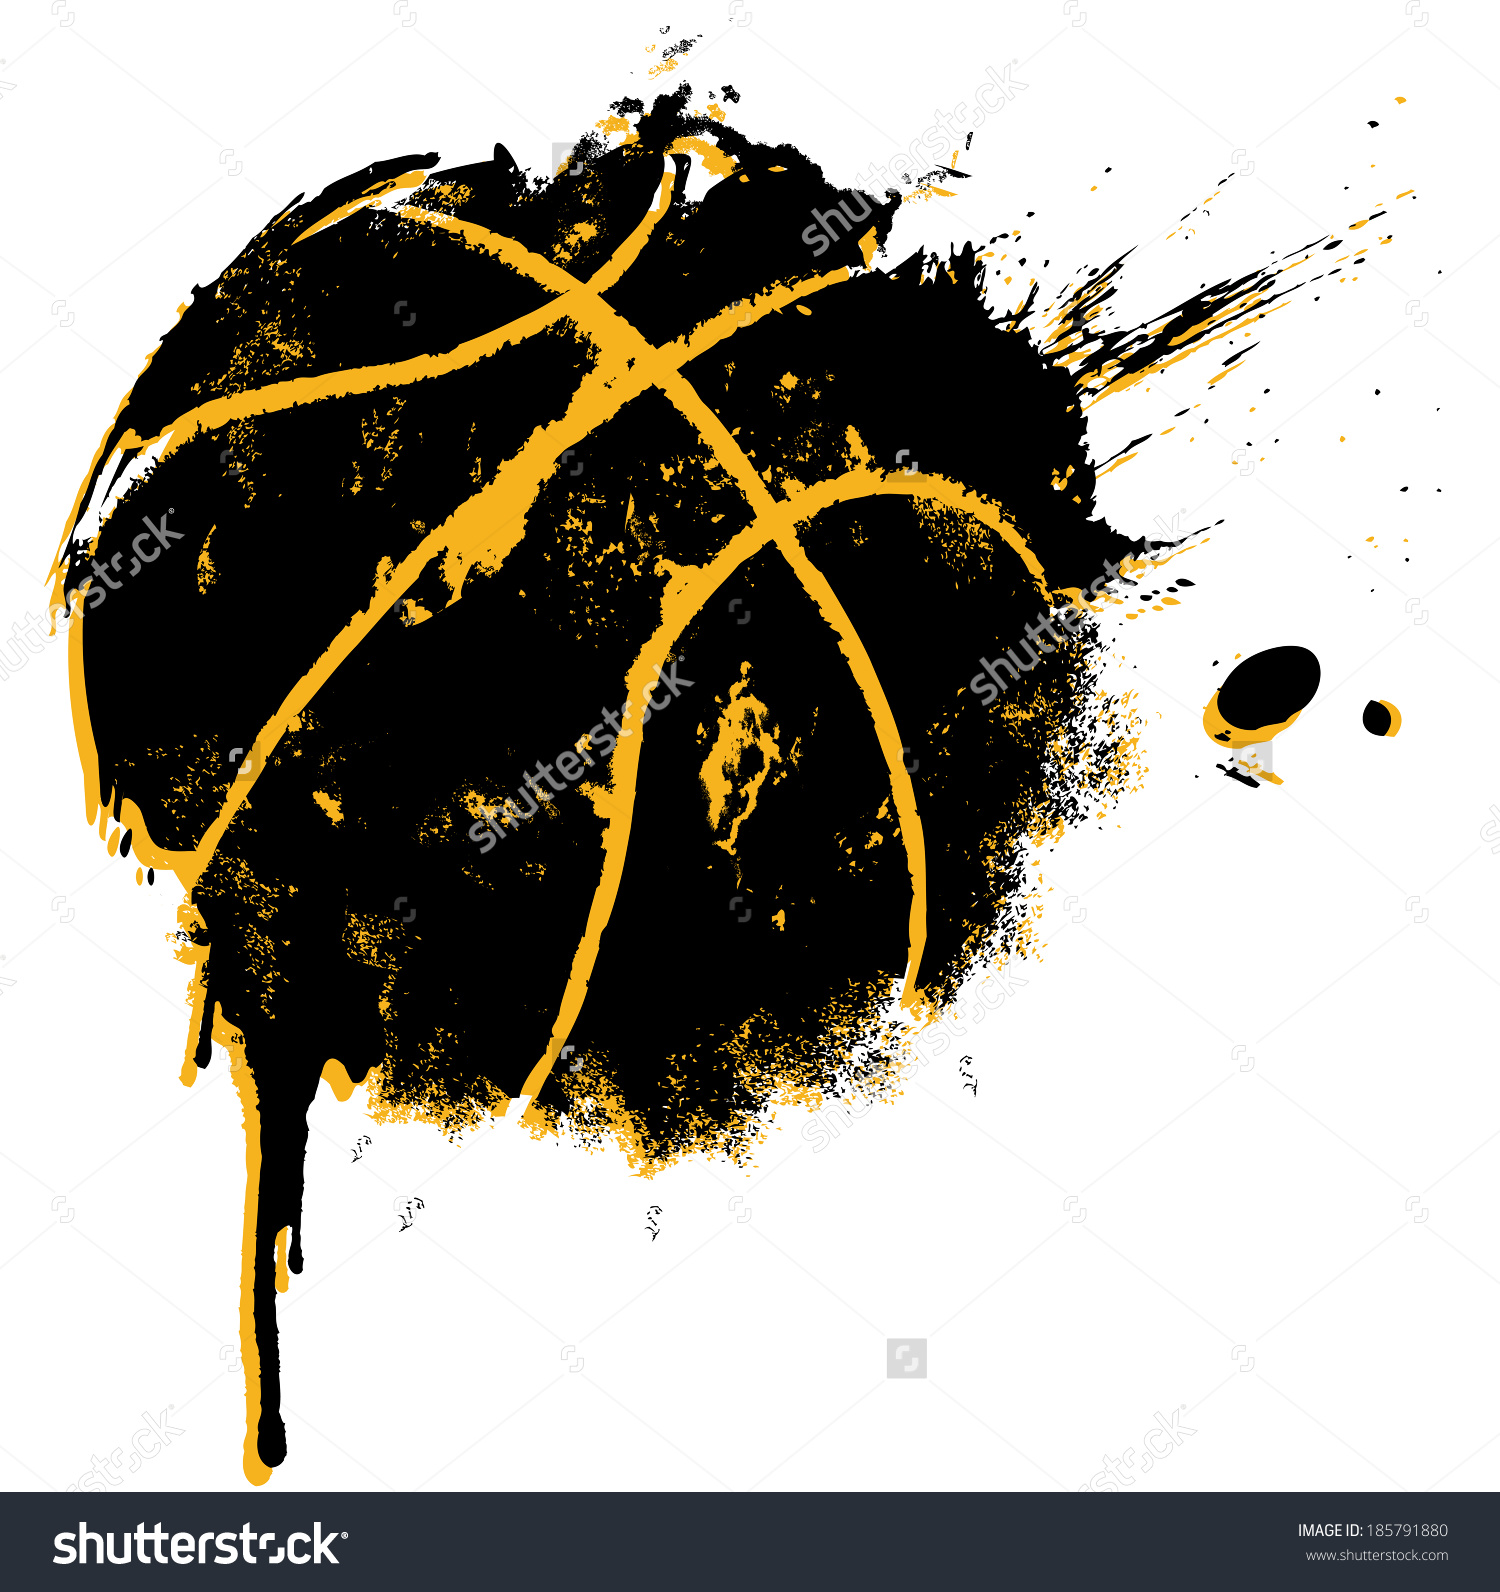 Girls Live Wallpaper For Android Free Download Download Basketball Graffiti Wallpapers Gallery